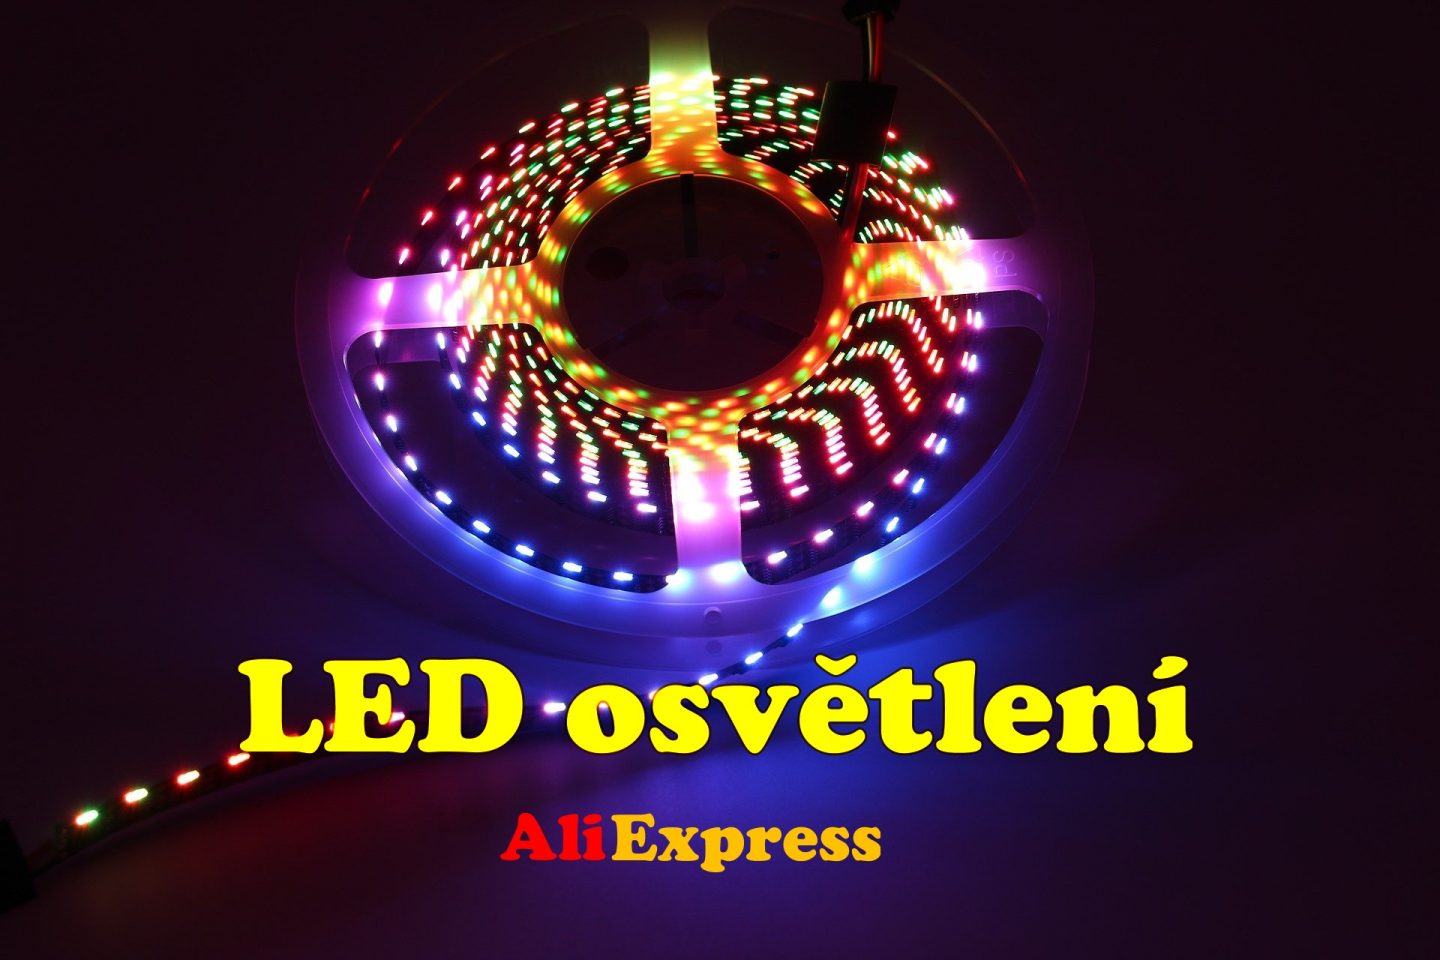 digital-led-strip-lights-Aliexpress-LED-pasky-osvetleni-CZ